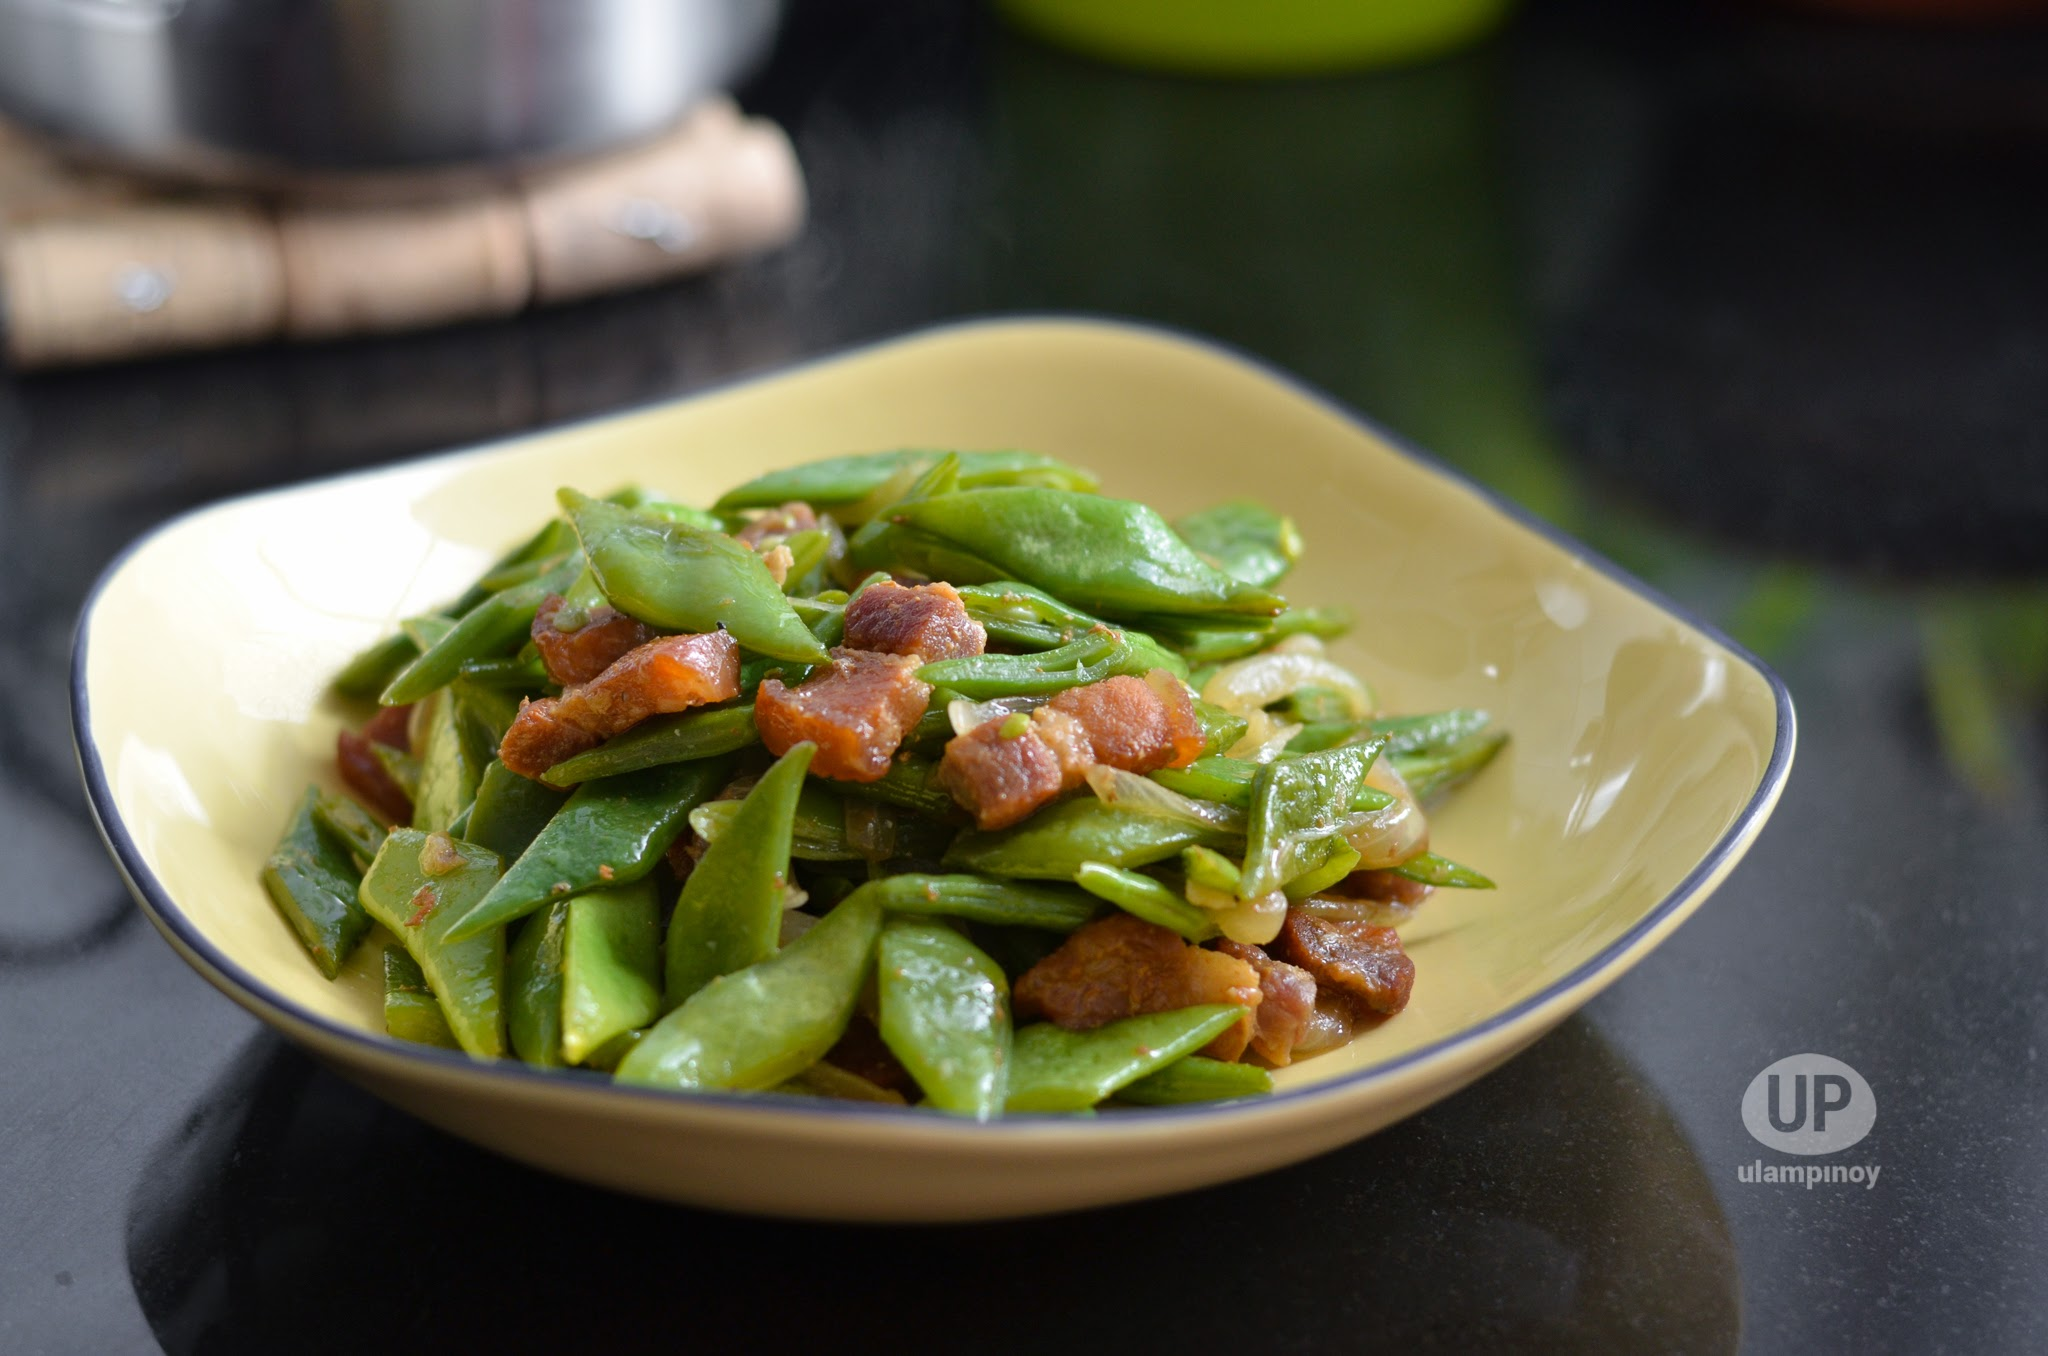 cover photo: Ginisang Green Beans